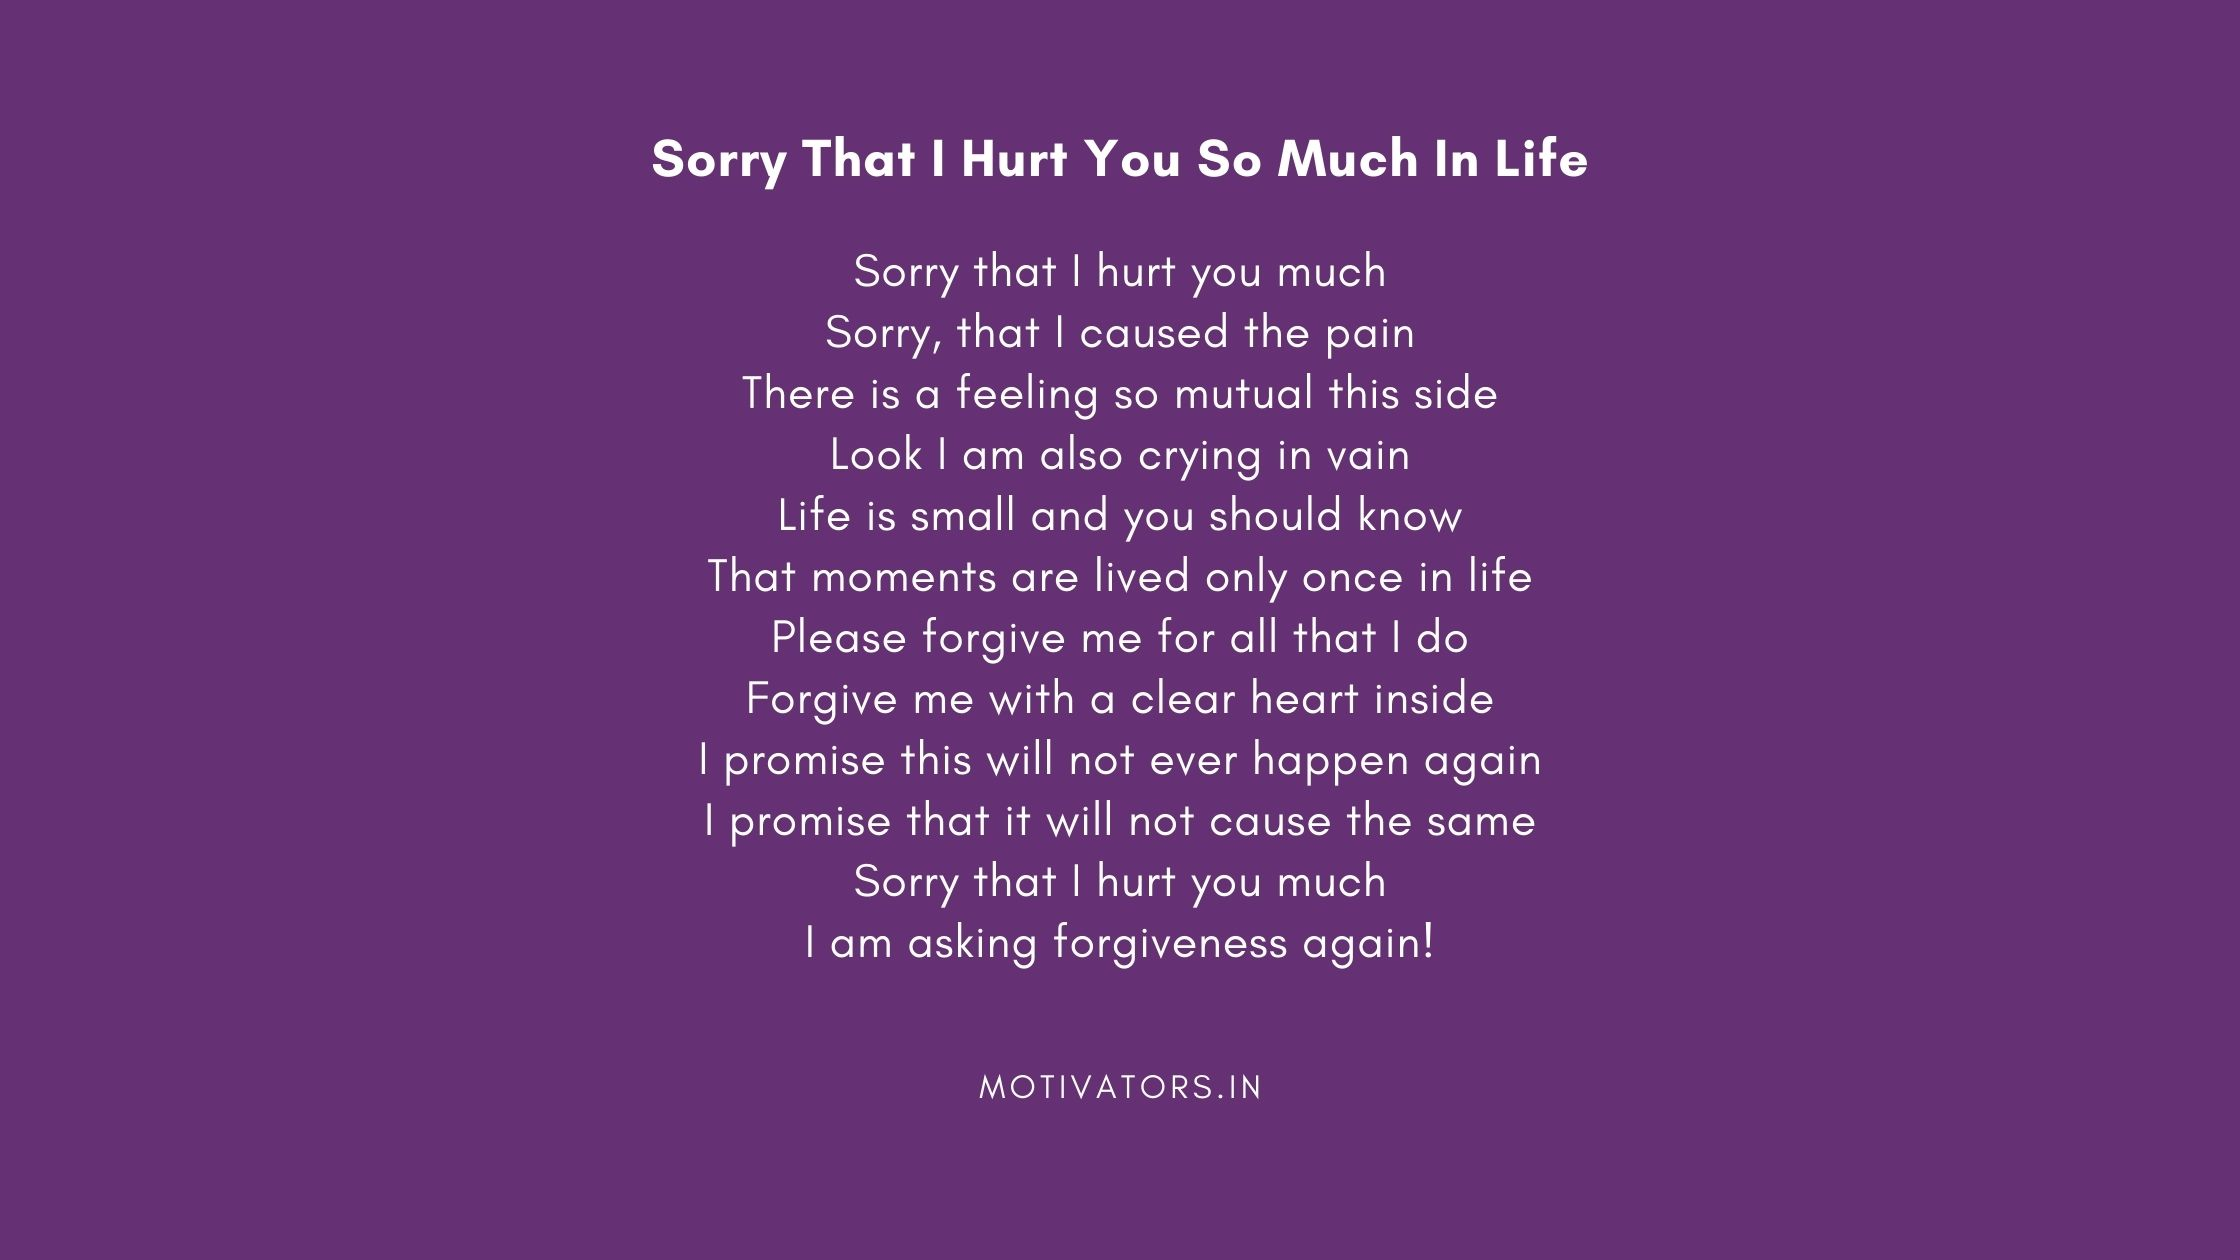 Sorry That I Hurt You So Much In Life